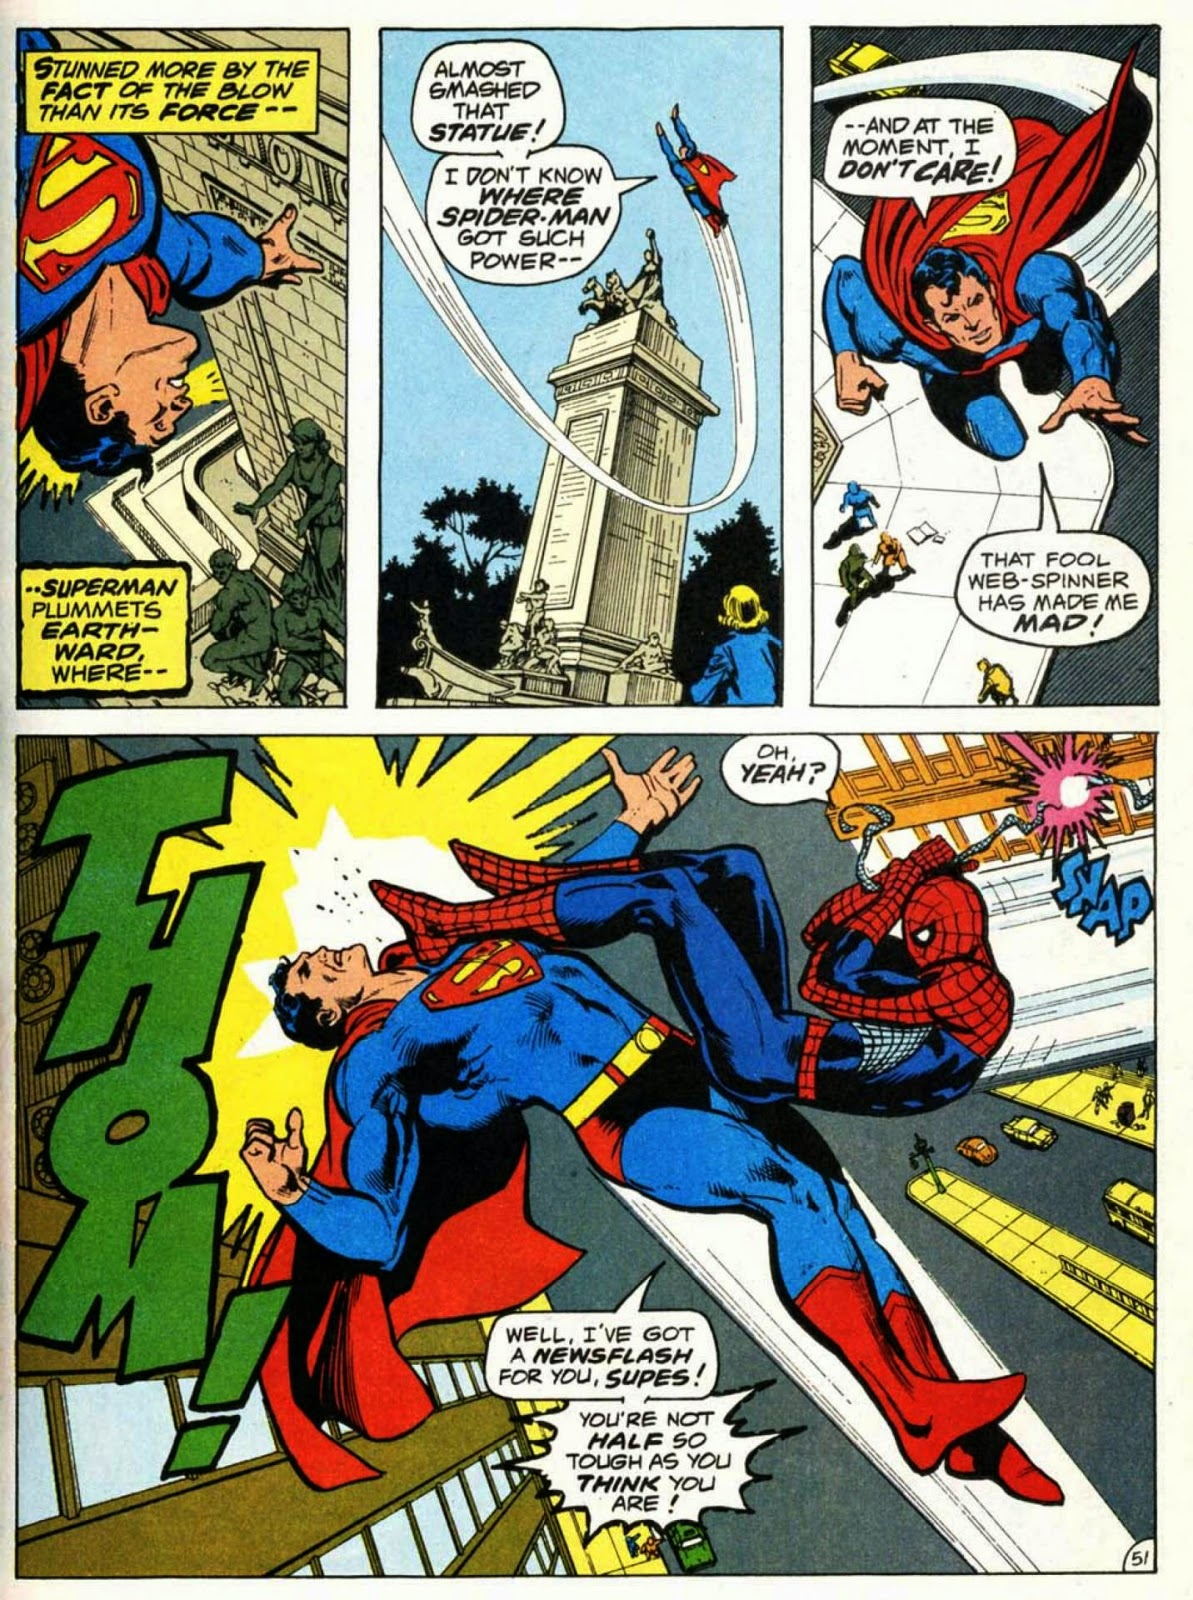 from Parker superman single spider man single